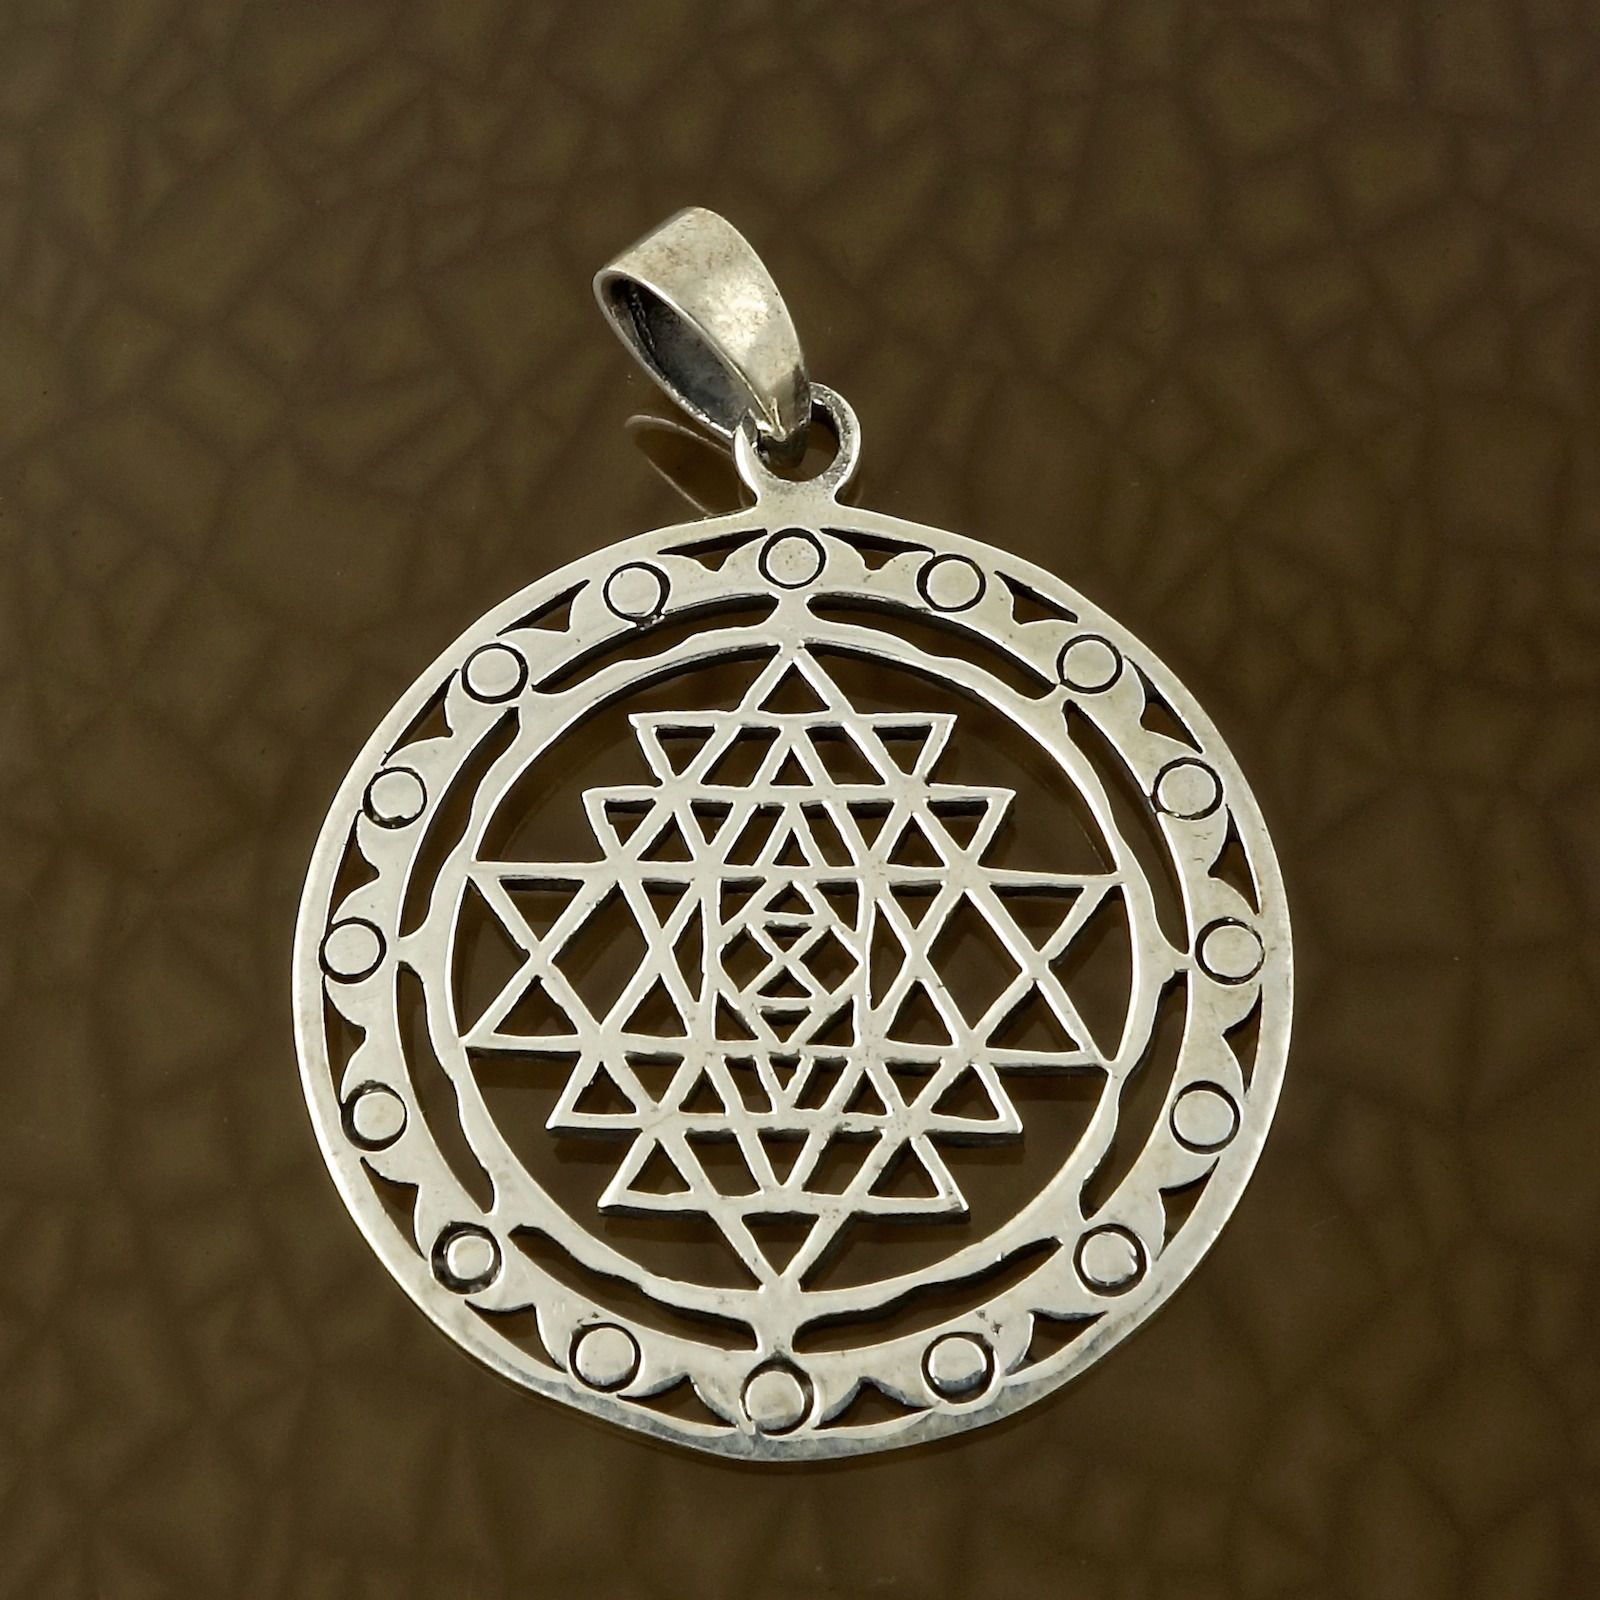 Sri yantra pendant in solid 925 sterling silver hindu tantric sri yantra pendant in solid 925 sterling silver hindu tantric charm this pendant depicts the classic hindu symbol for beauty of the three worlds buycottarizona